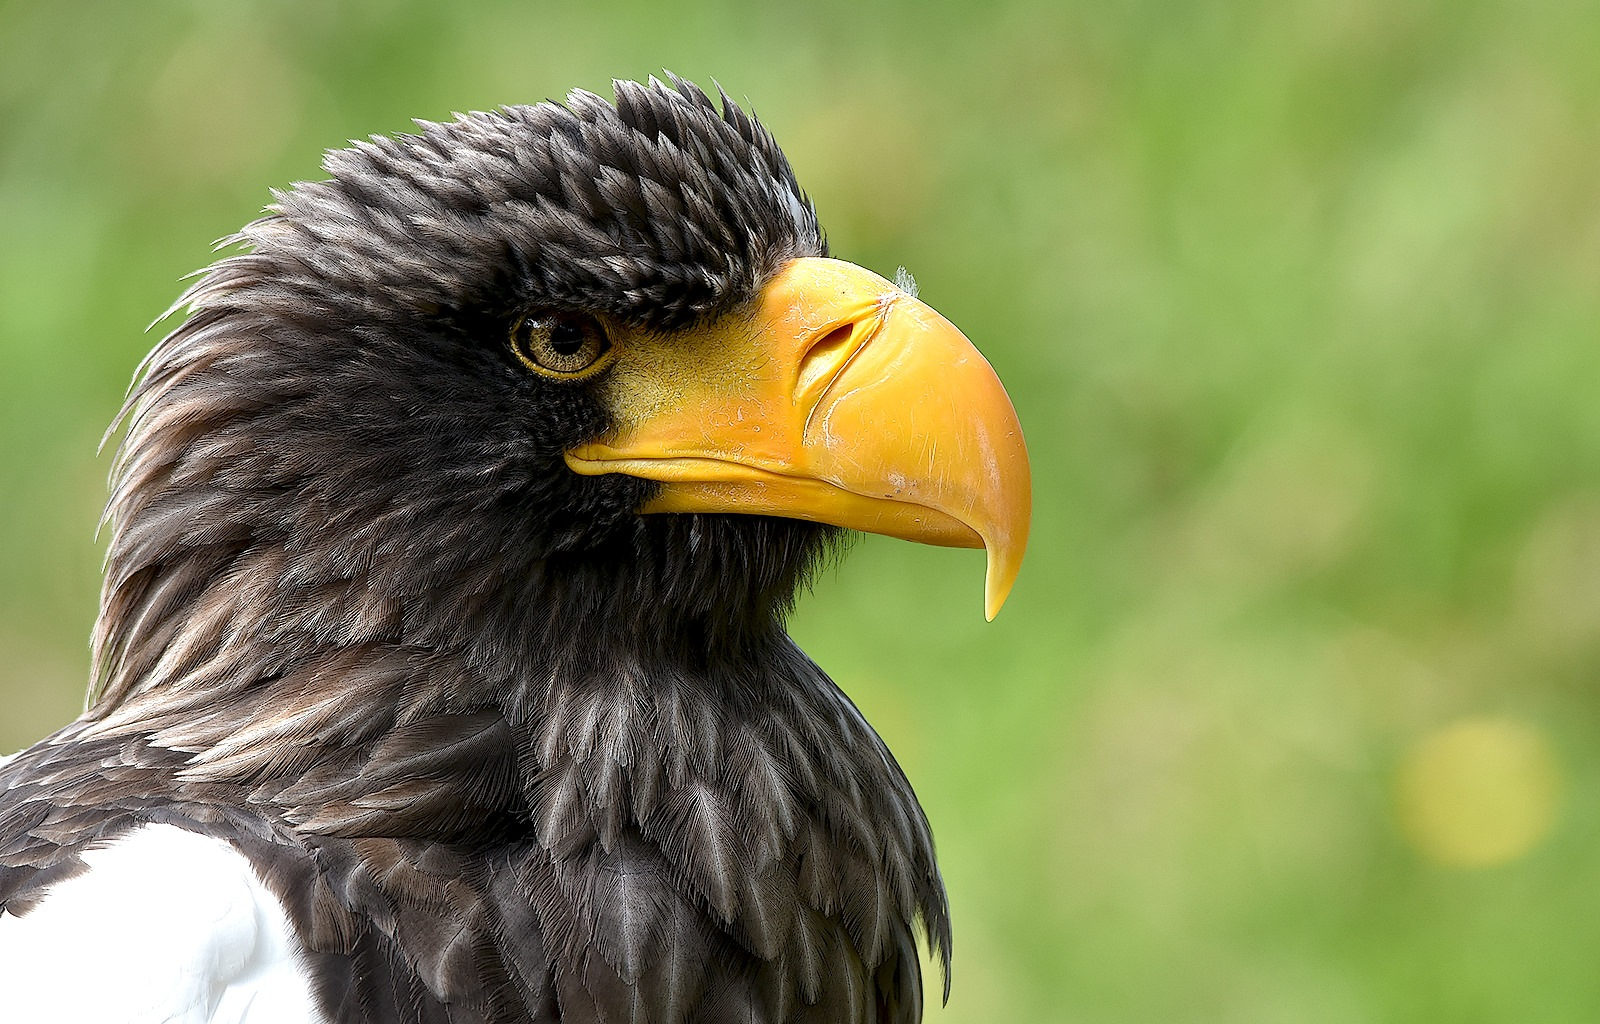 Steller's sea eagle by Asterix93